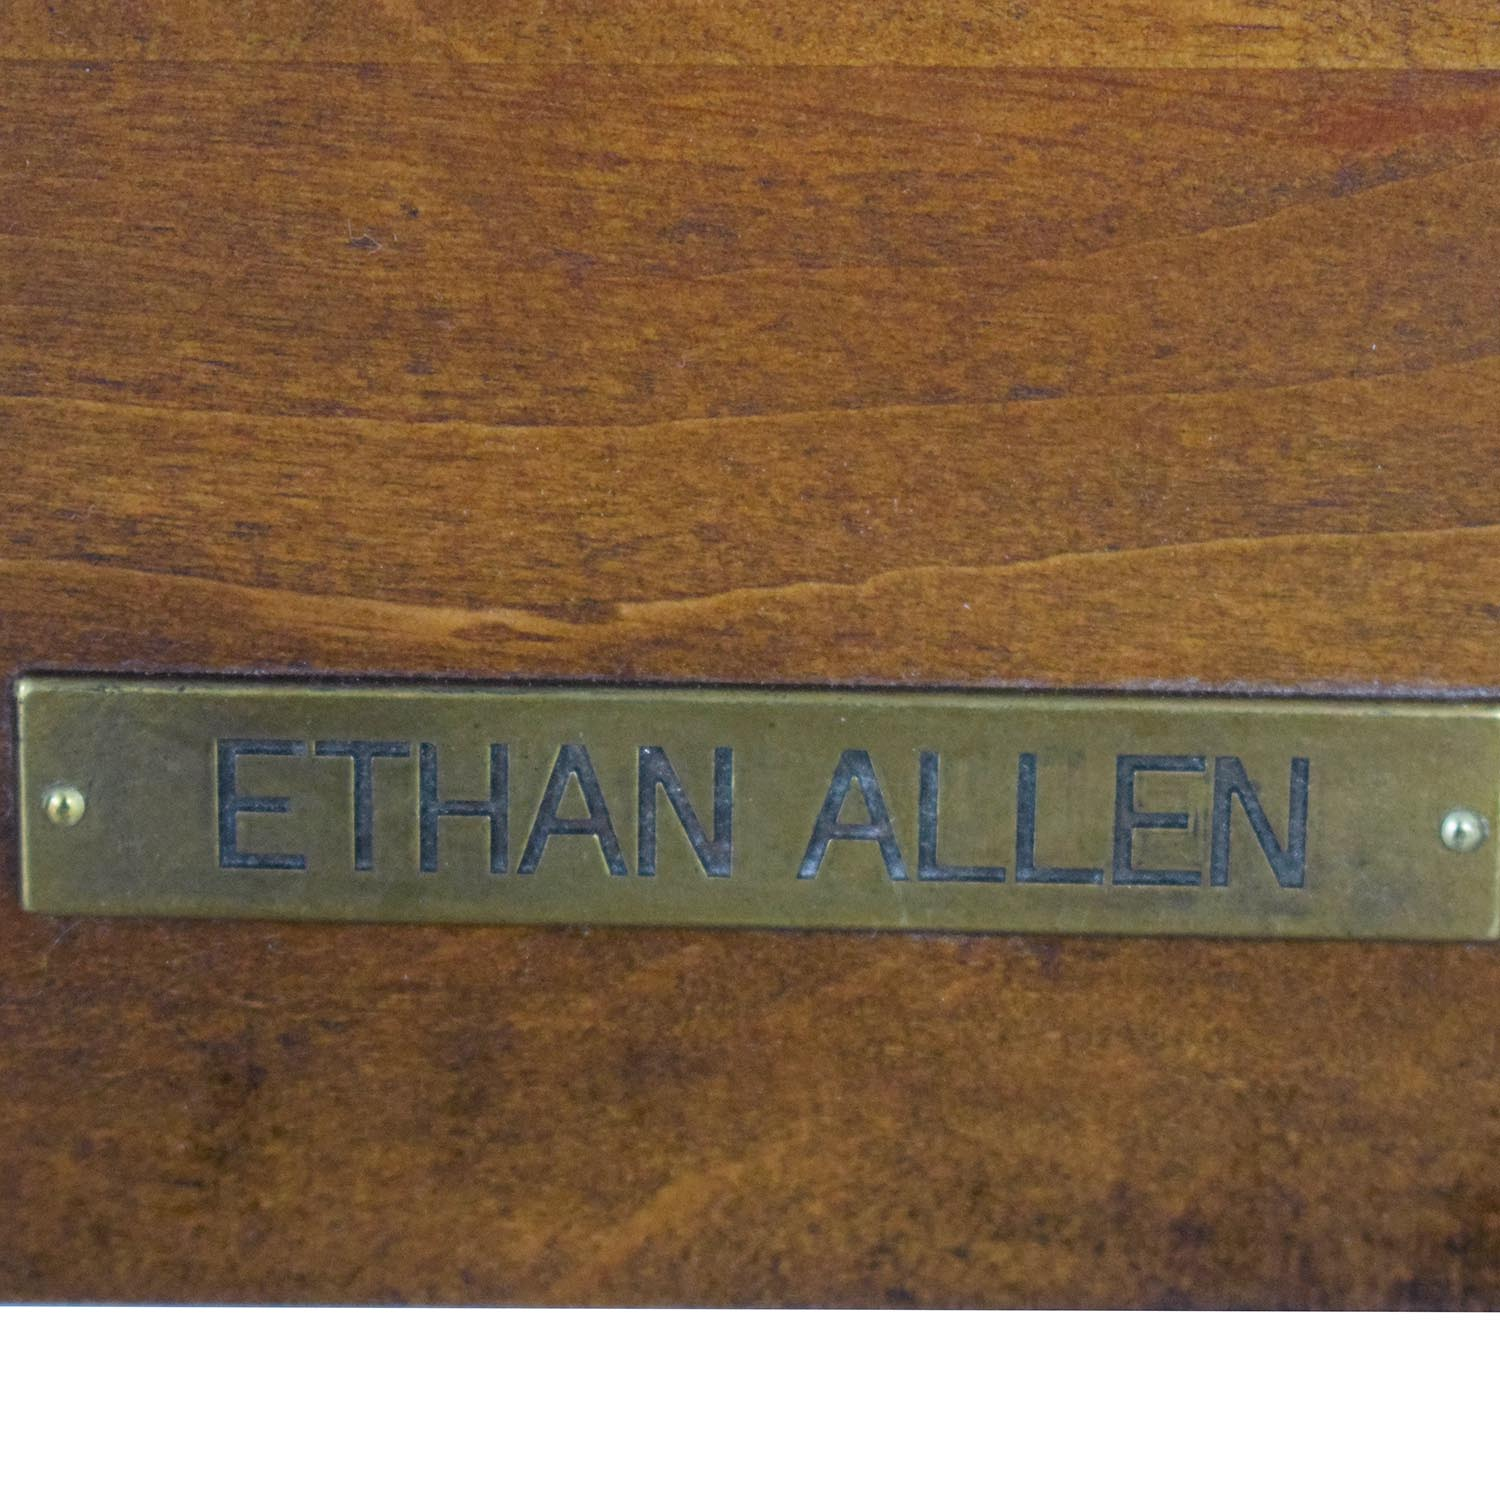 Ethan Allen Ethan Allen Queen Sleigh Bed coupon